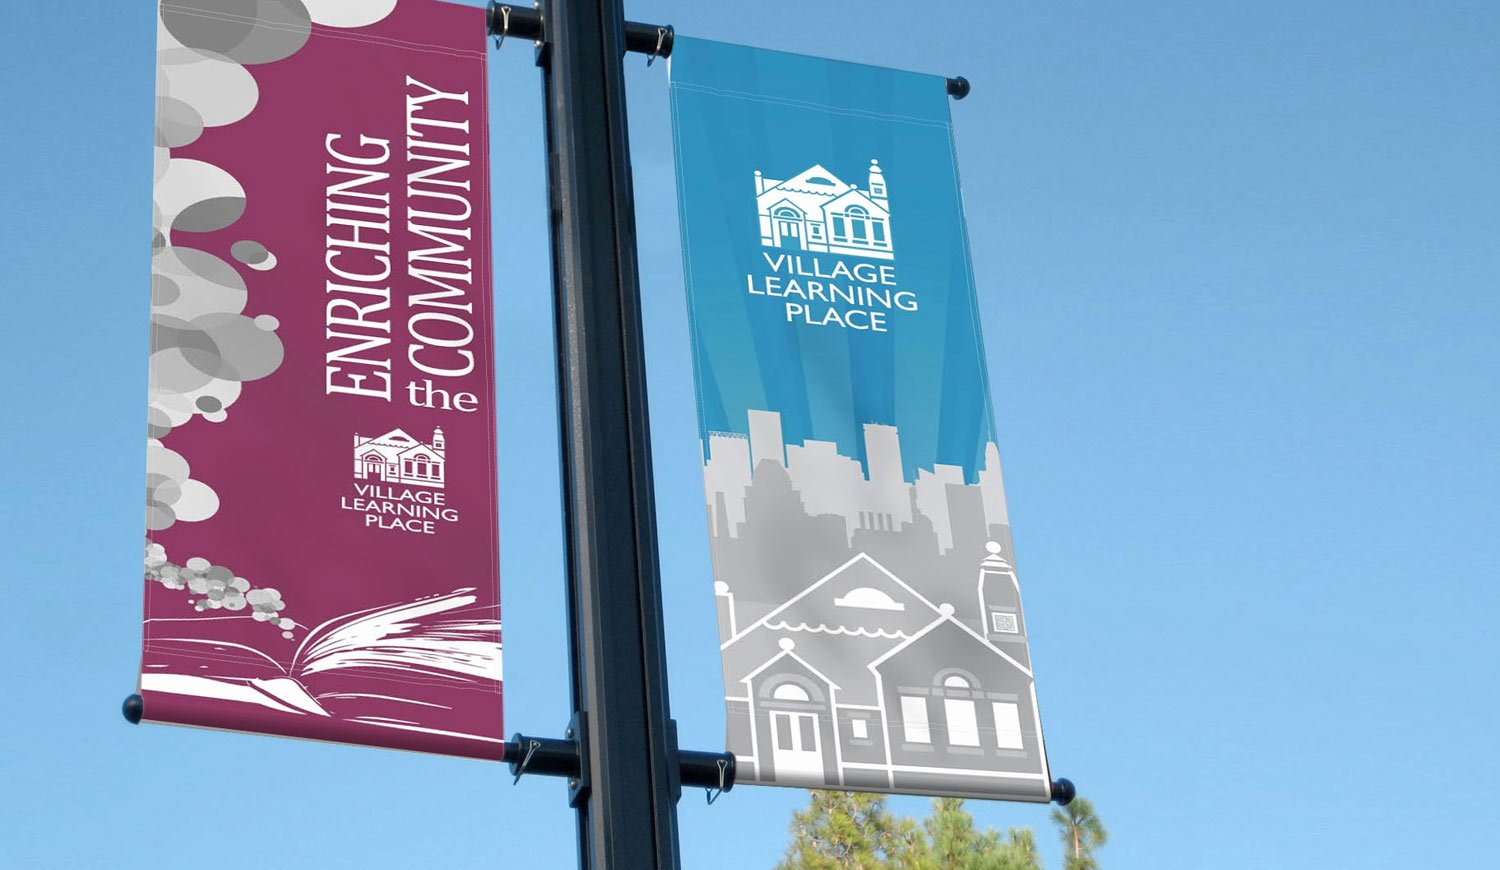 Printed Lamppost Banners - Street banners for lampposts